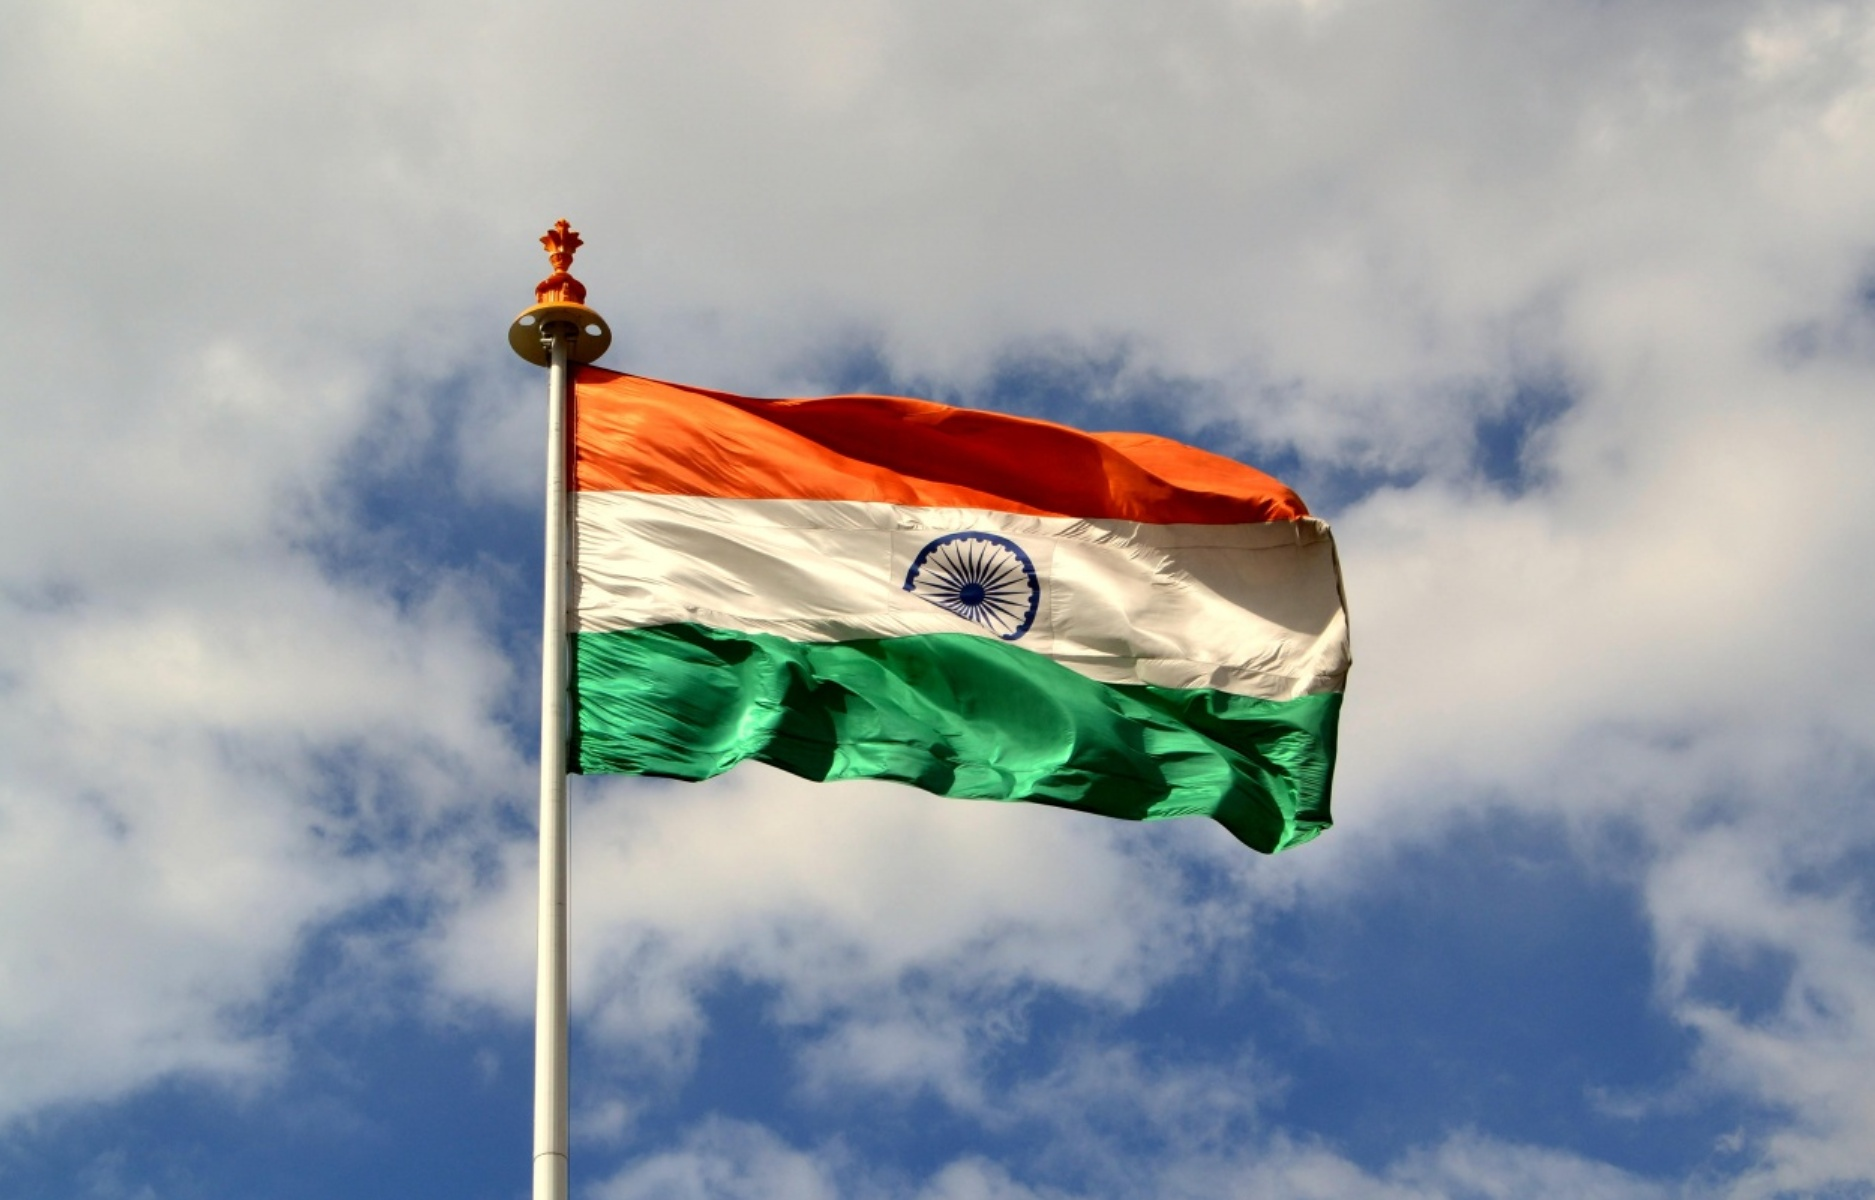 Indian Flag Flying wallpaper for pc free download